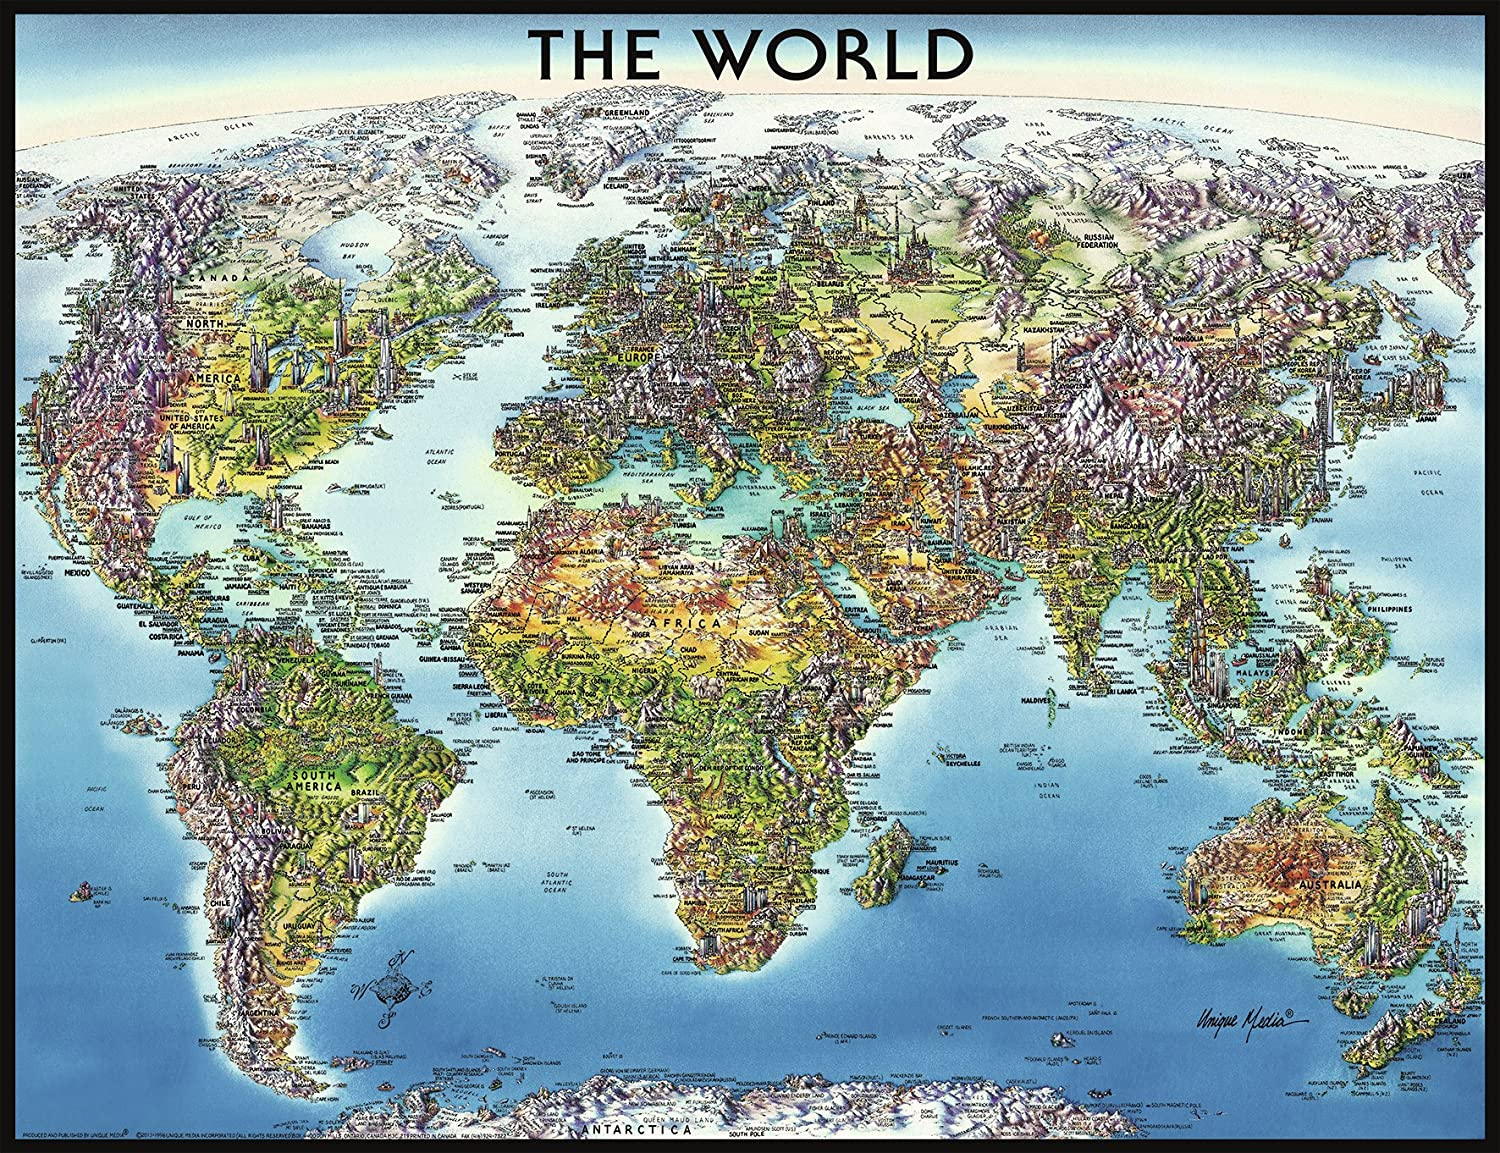 Ravensburger world map jigsaw puzzle 2000 piece jigsaw puzzles ravensburger world map jigsaw puzzle 2000 piece jigsaw puzzles amazon canada gumiabroncs